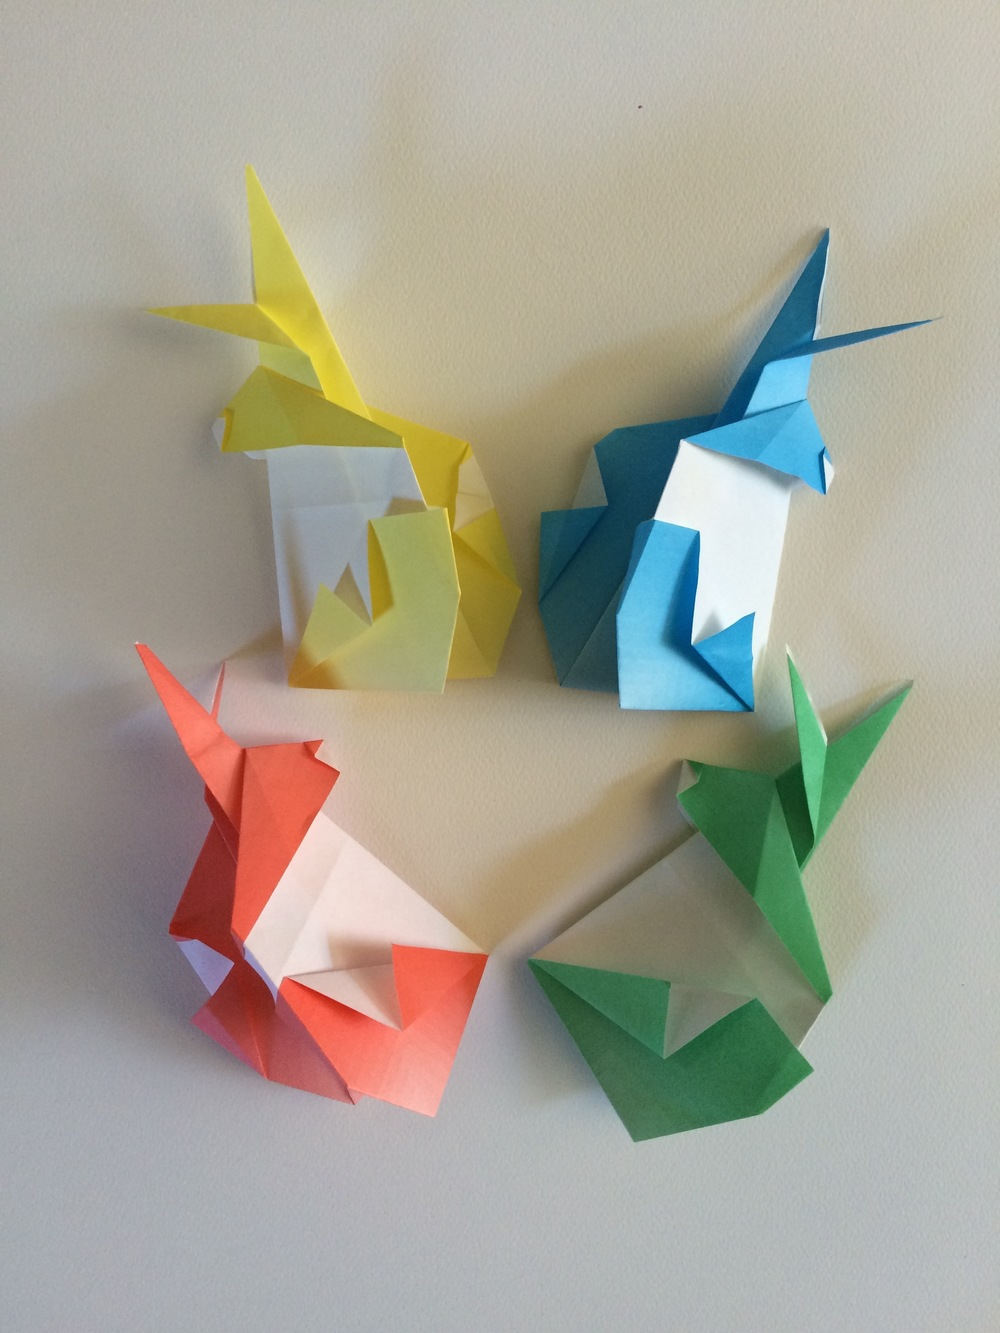 Origami rabbits in colors of the rainbow!